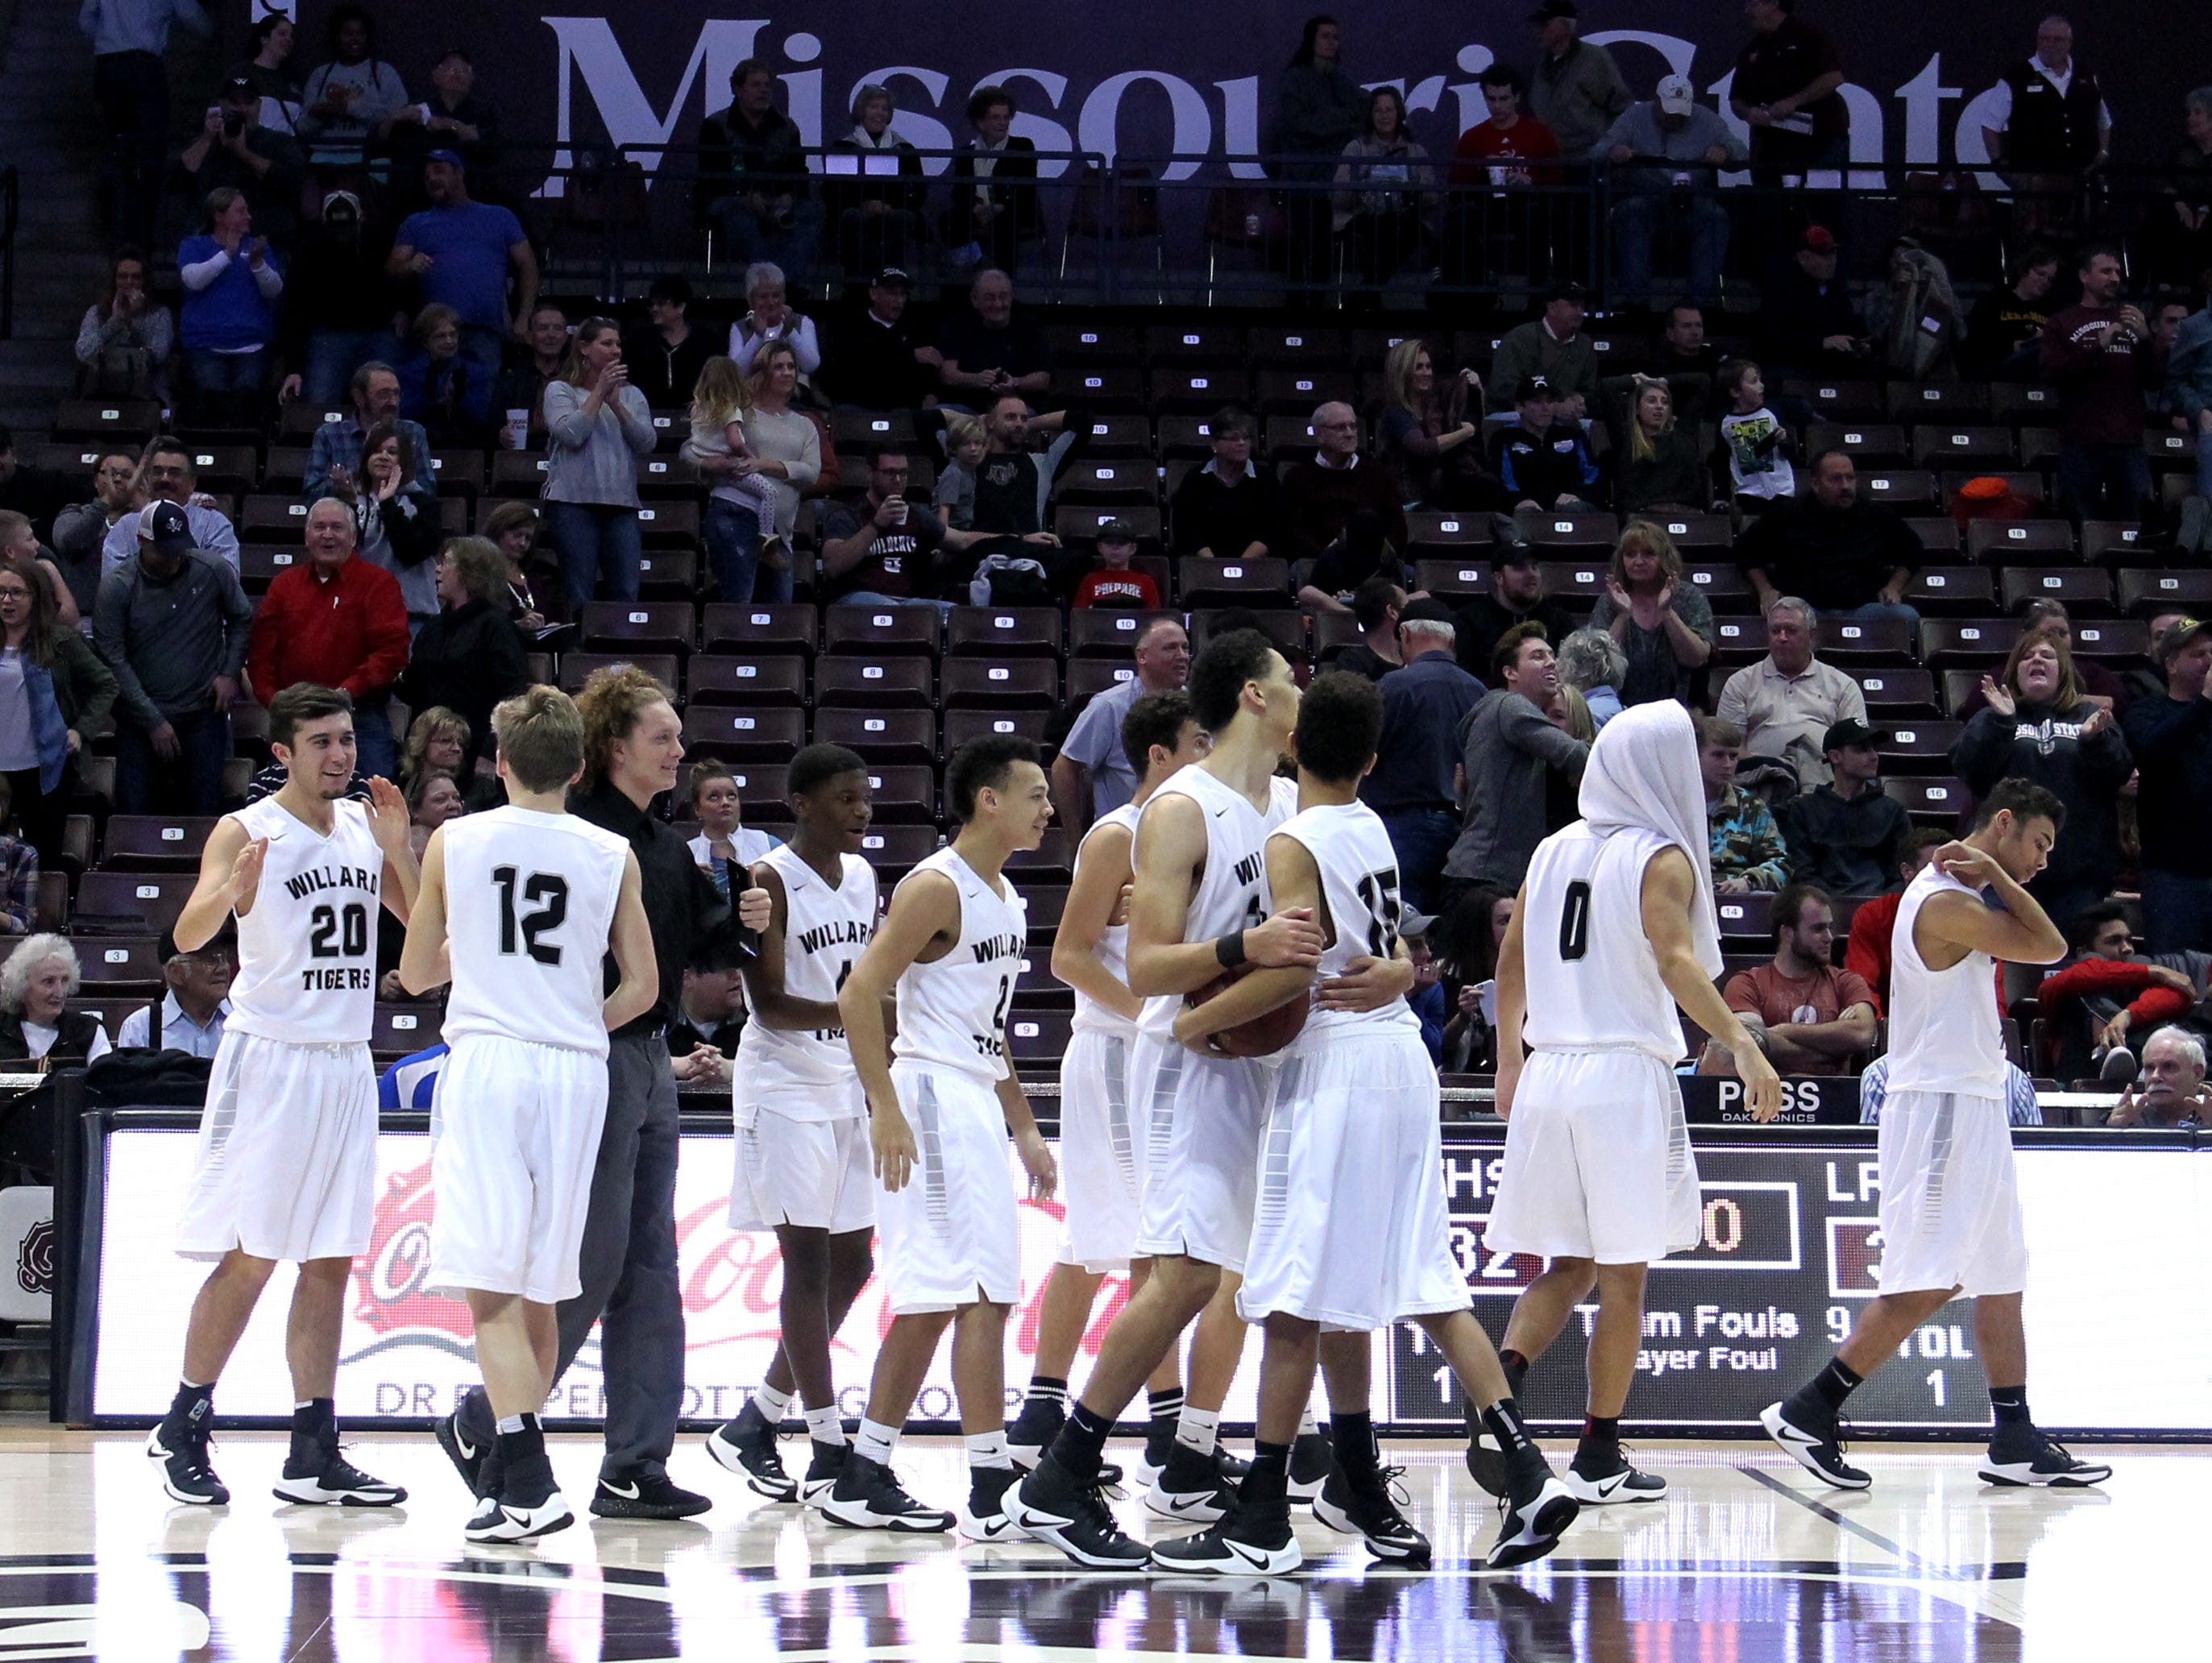 The Willard High School boys basketball team celebrates a 32-31 win over Rogersville in the Gold Division semifinals of the 71st annual Greenwood Blue and Gold Tournament at JQH Arena on Dec. 28, 2016.